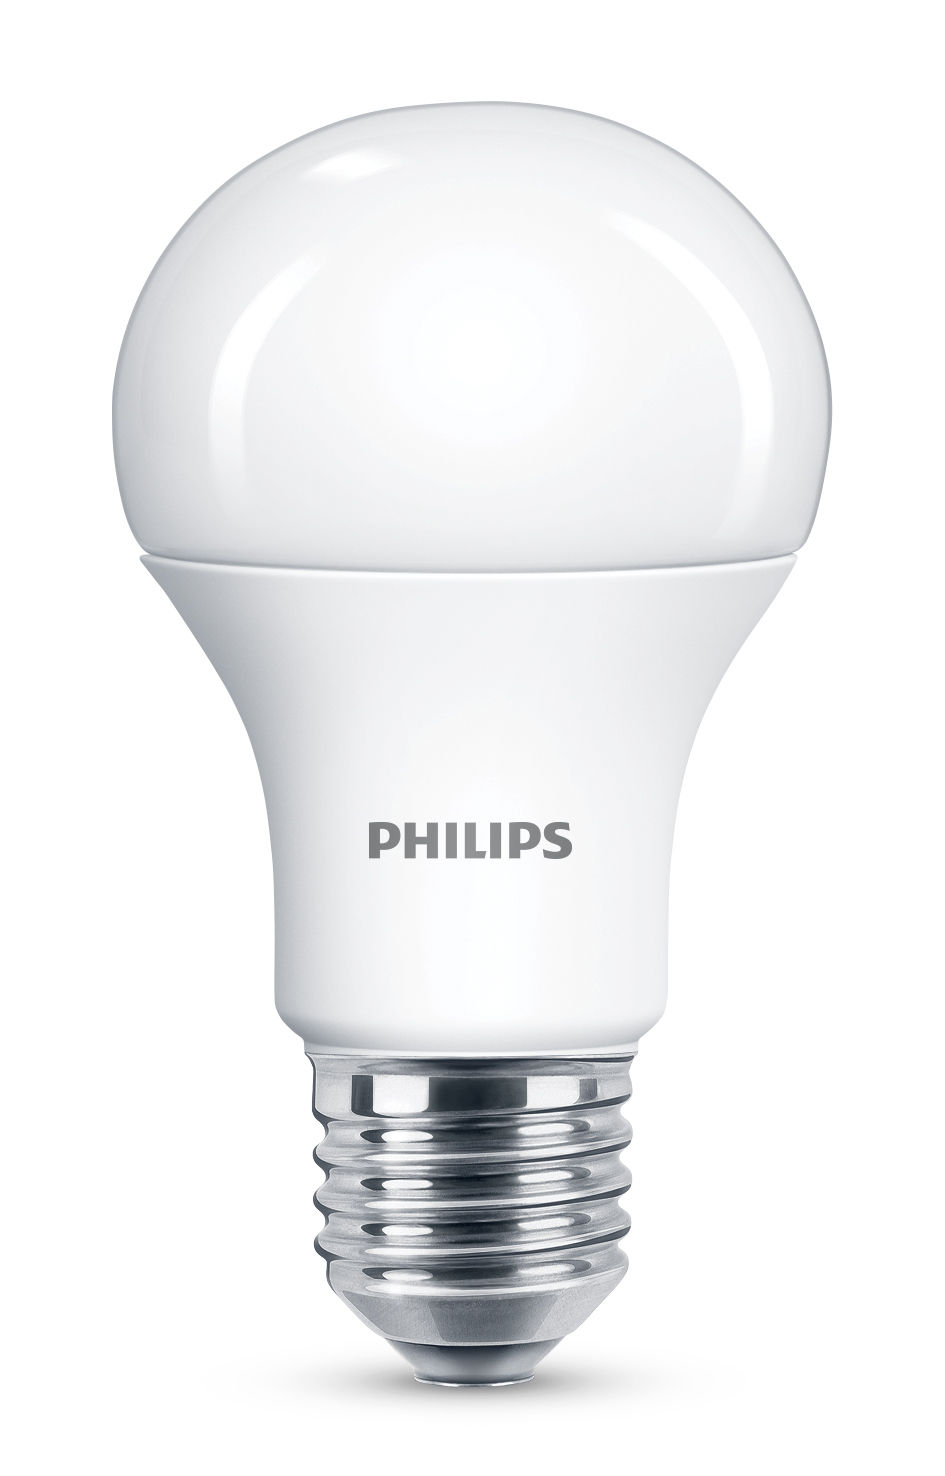 standard d polie led bulb e27 10w 75w 1055 lumen 10w 75w by philips made in design uk. Black Bedroom Furniture Sets. Home Design Ideas